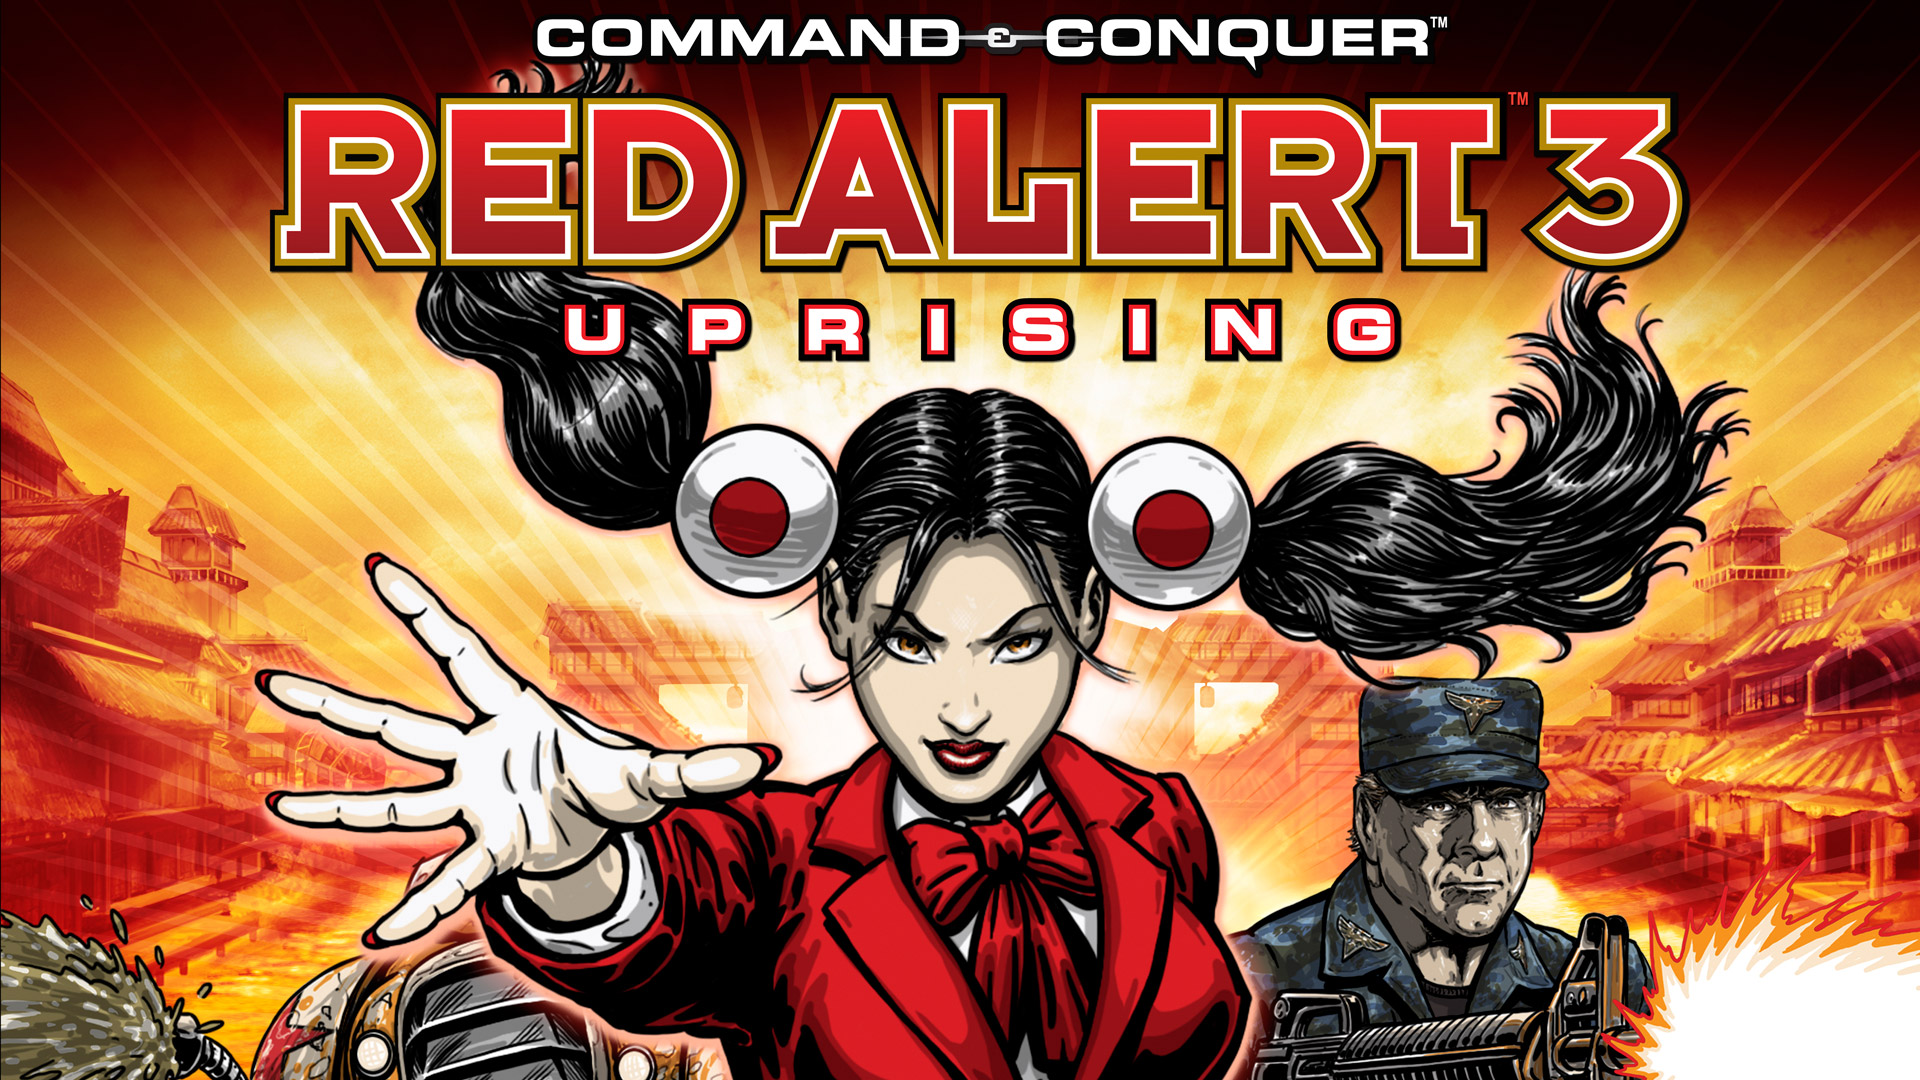 Free Command & Conquer: Red Alert 3 - Uprising Wallpaper in 1920x1080